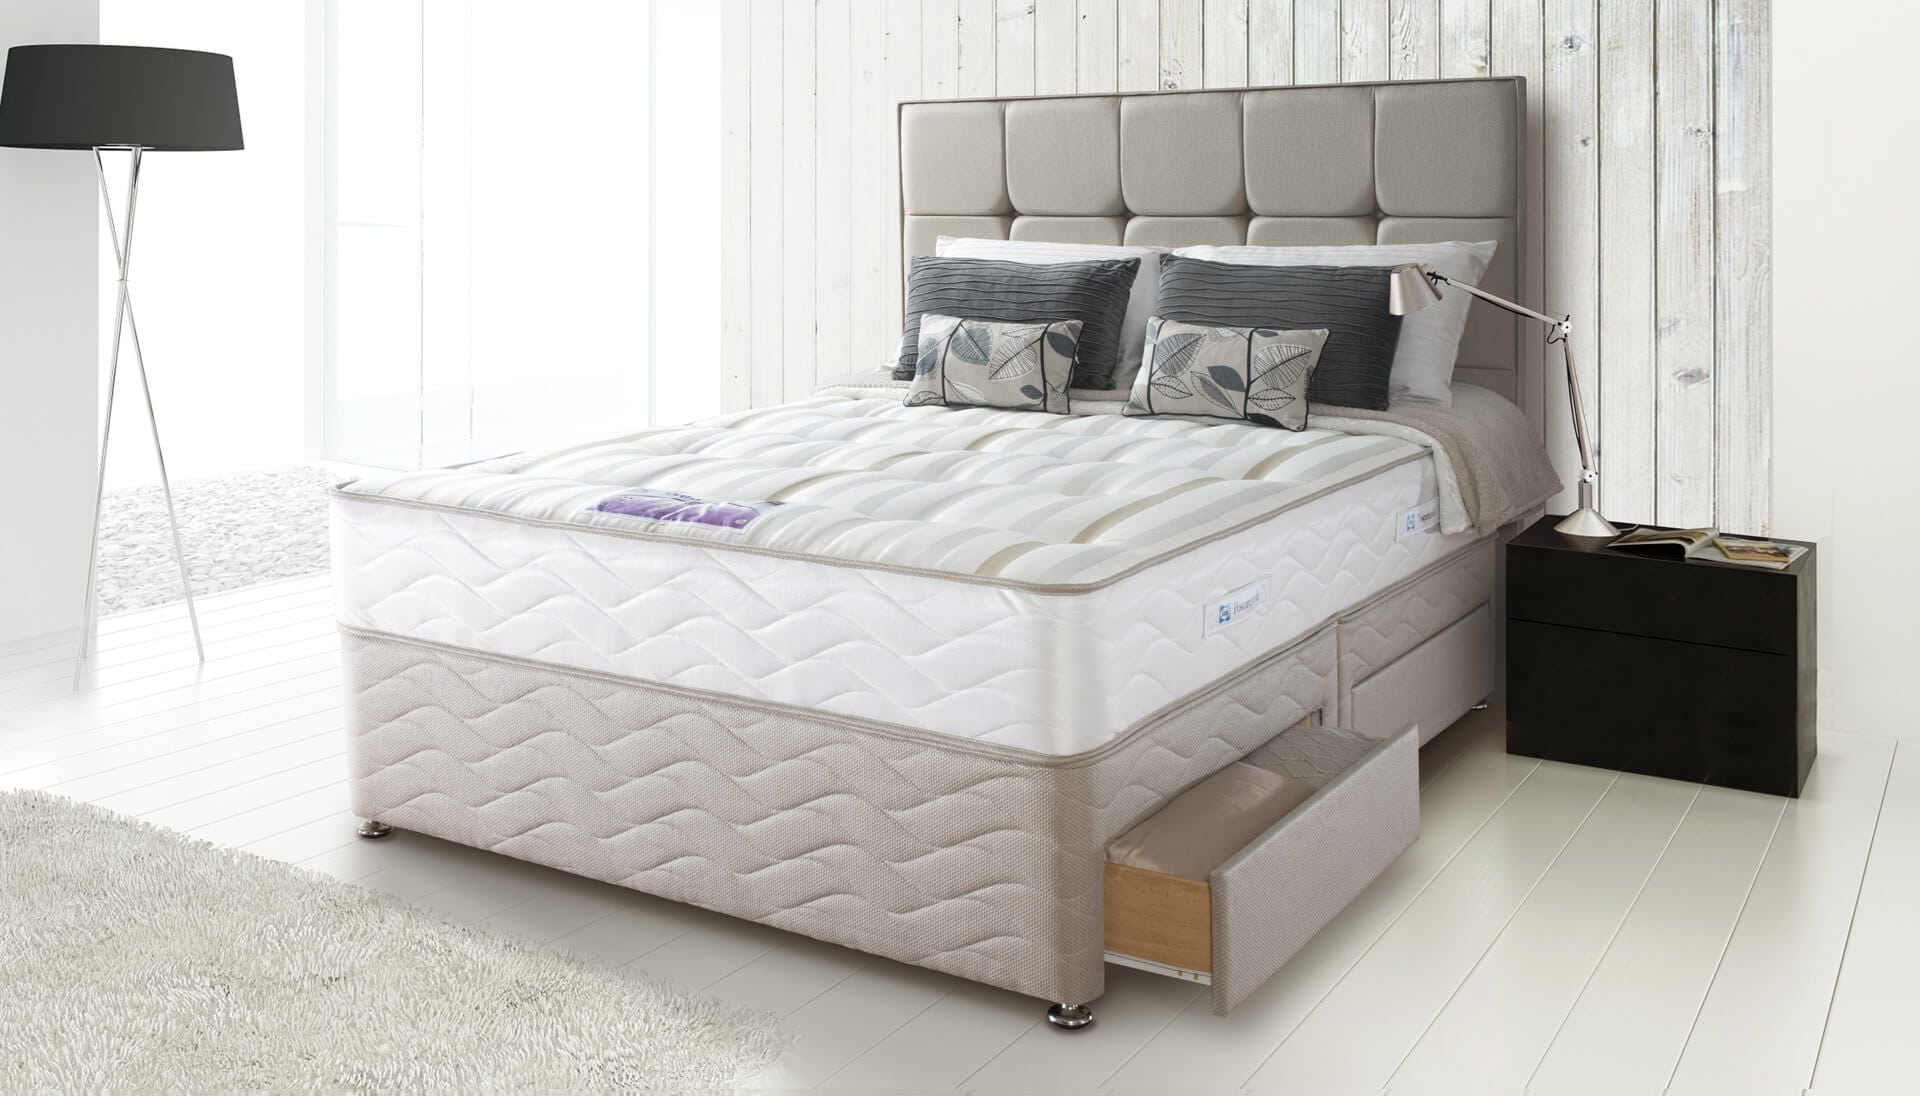 sealy beds comfortable   stylish beds crestwood of interior design services contract template Interior Design Contracts and Fees